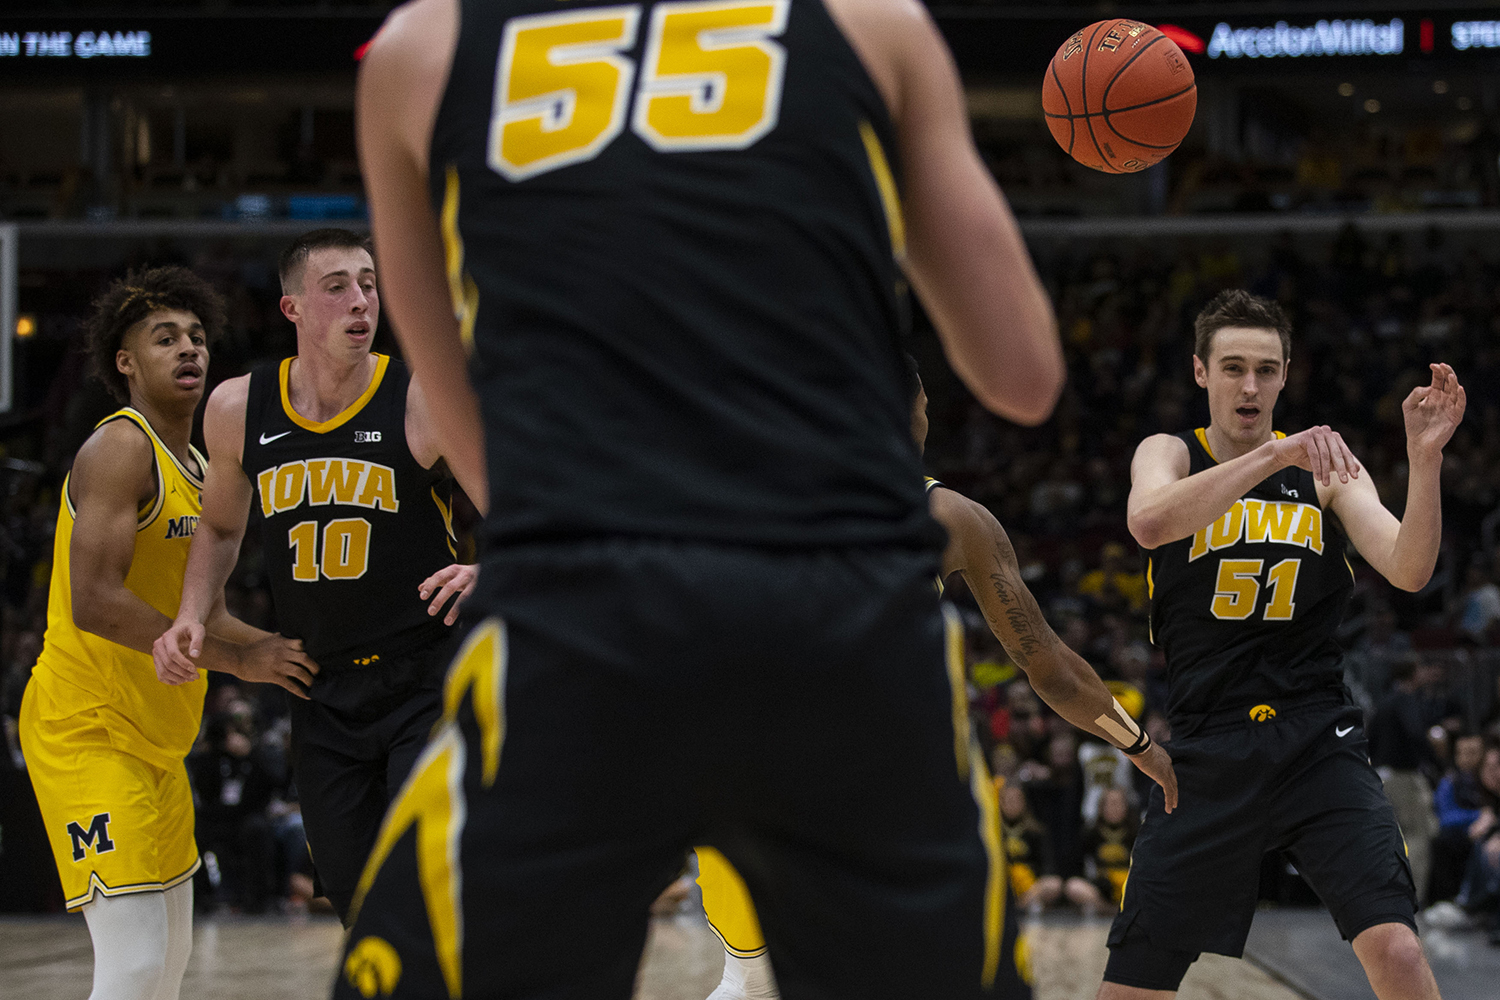 Iowa+forward+Nicholas+Baer+%2851%29+passes+the+ball+to+forward+Luka+Garza+%2851%29+during+the+Iowa%2FMichigan+Big+Ten+Tournament+men%27s+basketball+game+in+the+United+Center+in+Chicago+on+Friday%2C+March+15%2C+2019.+The+Wolverines+defeated+the+Hawkeyes%2C+74-53.+